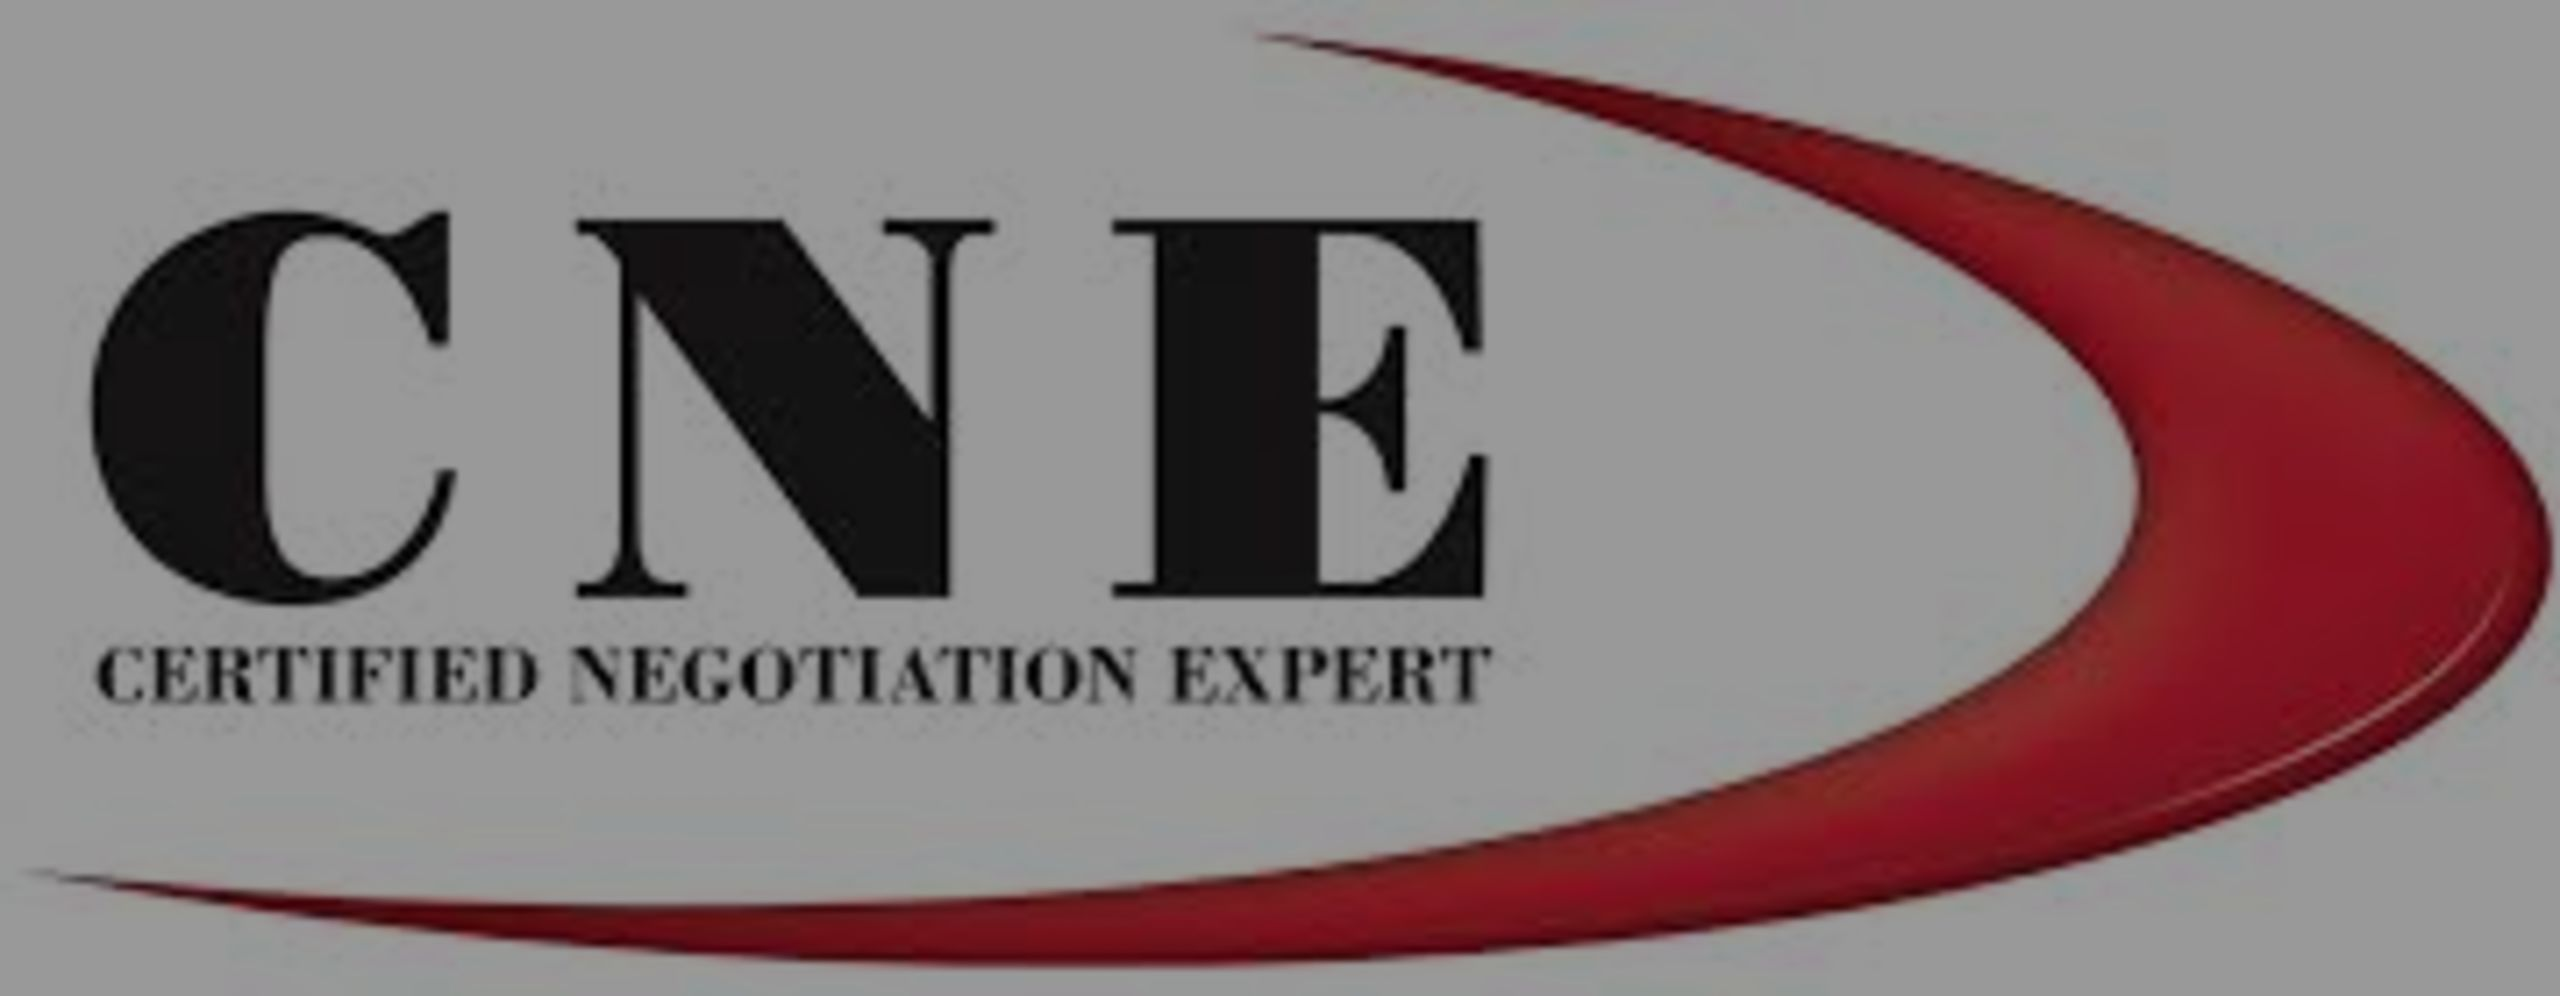 Why Your Real Estate Agent Should Have a CNE Designation?